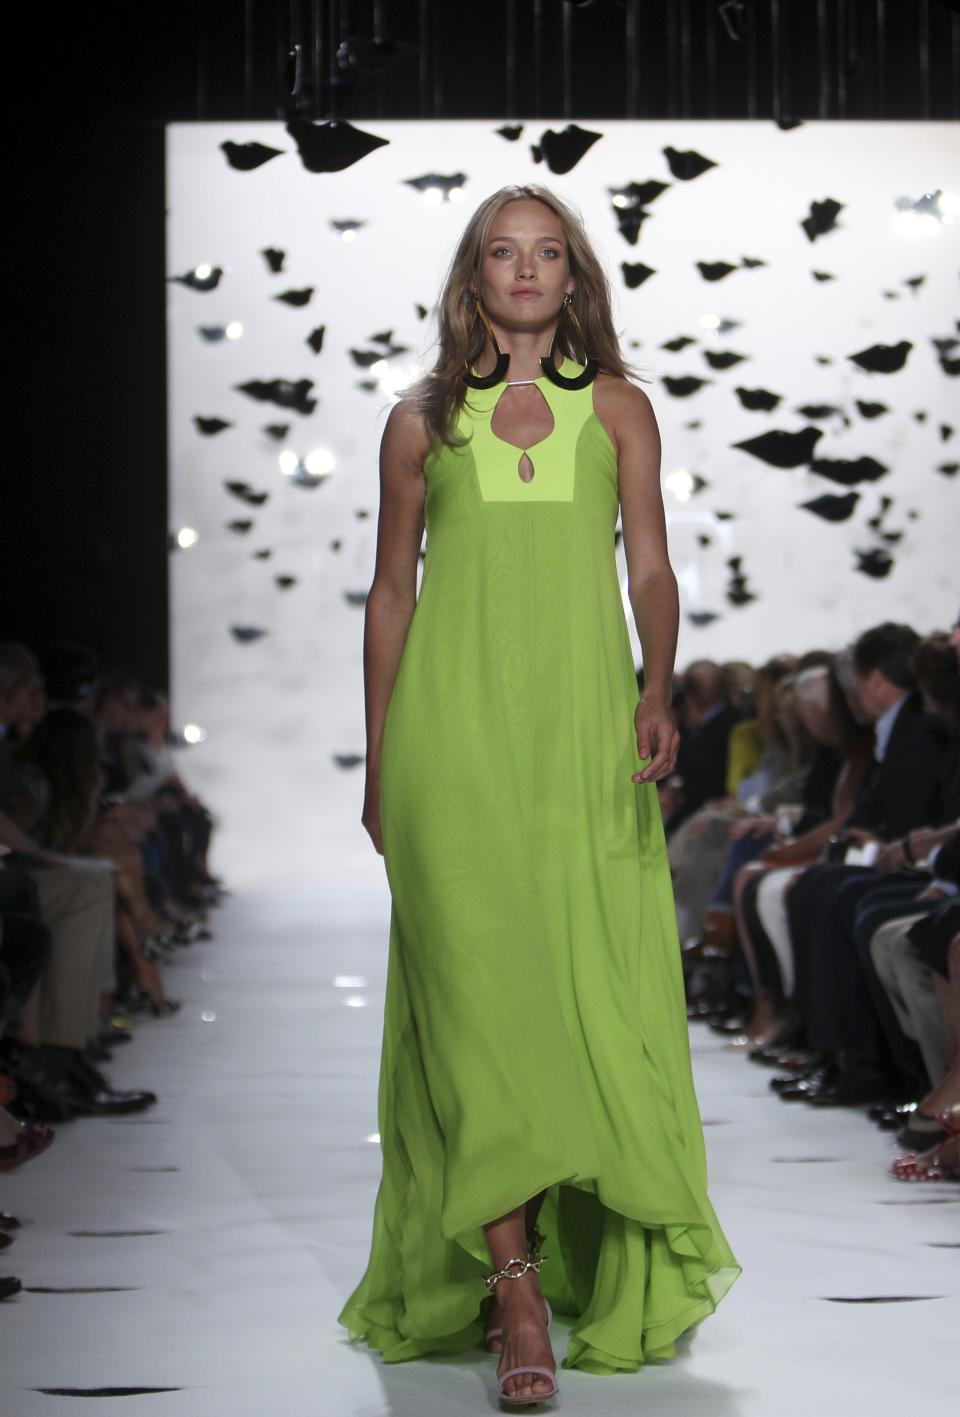 The Diane Von Furstenberg Spring 2013 collection is modeled during Fashion Week in New York, Sunday, Sept. 9, 2012.  (AP Photo/Seth Wenig)